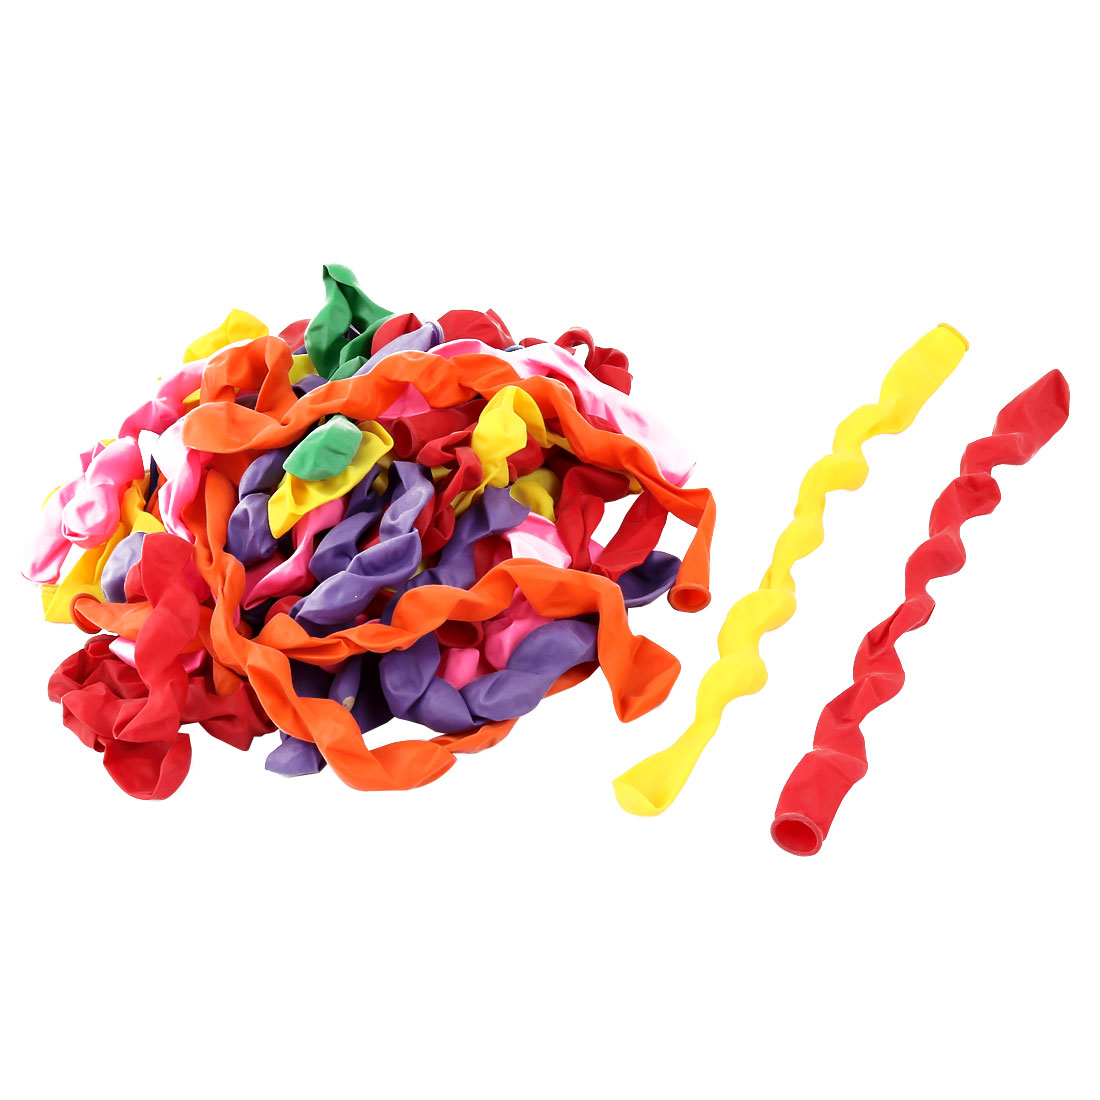 40 Pcs Assorted Color Latex Inflatable Long Spiral Balloons for Christmas Party